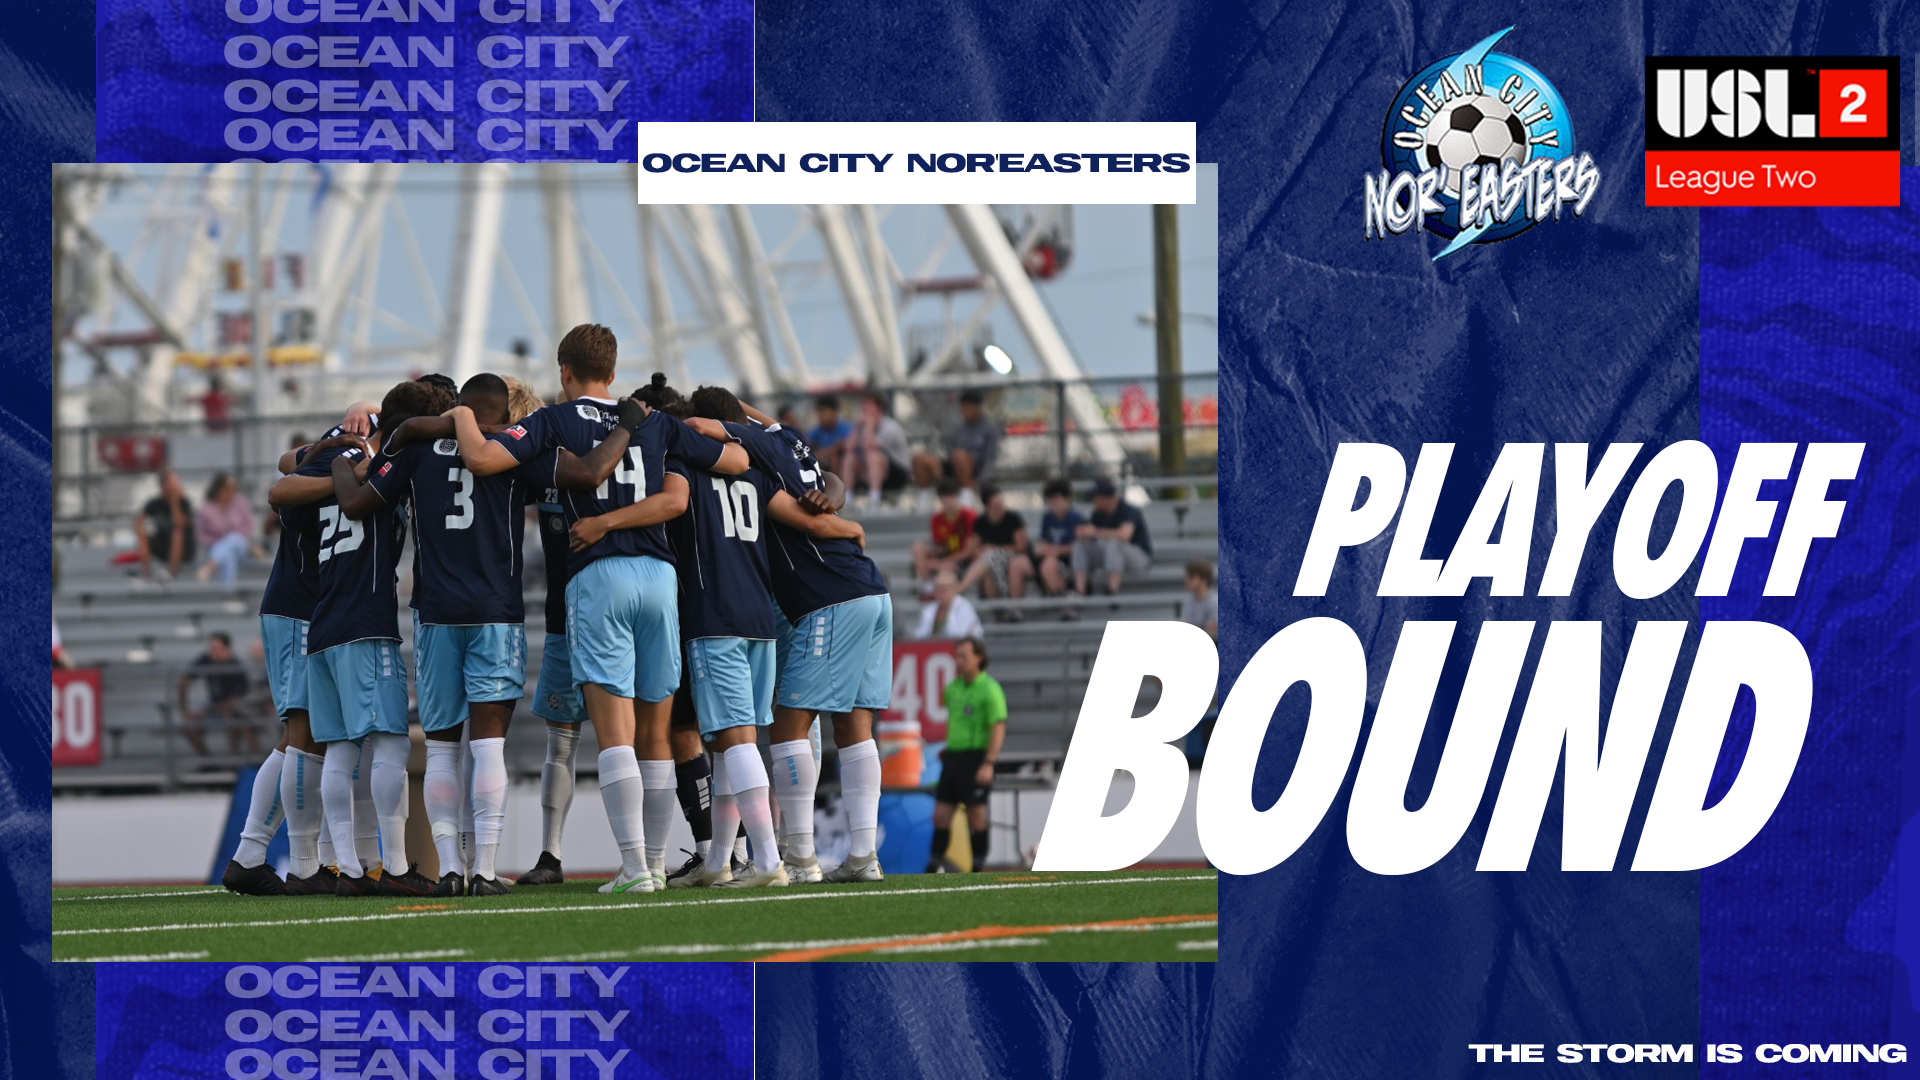 Nor'easters to open 2021 playoff run this weekend vs. Boston Bolts